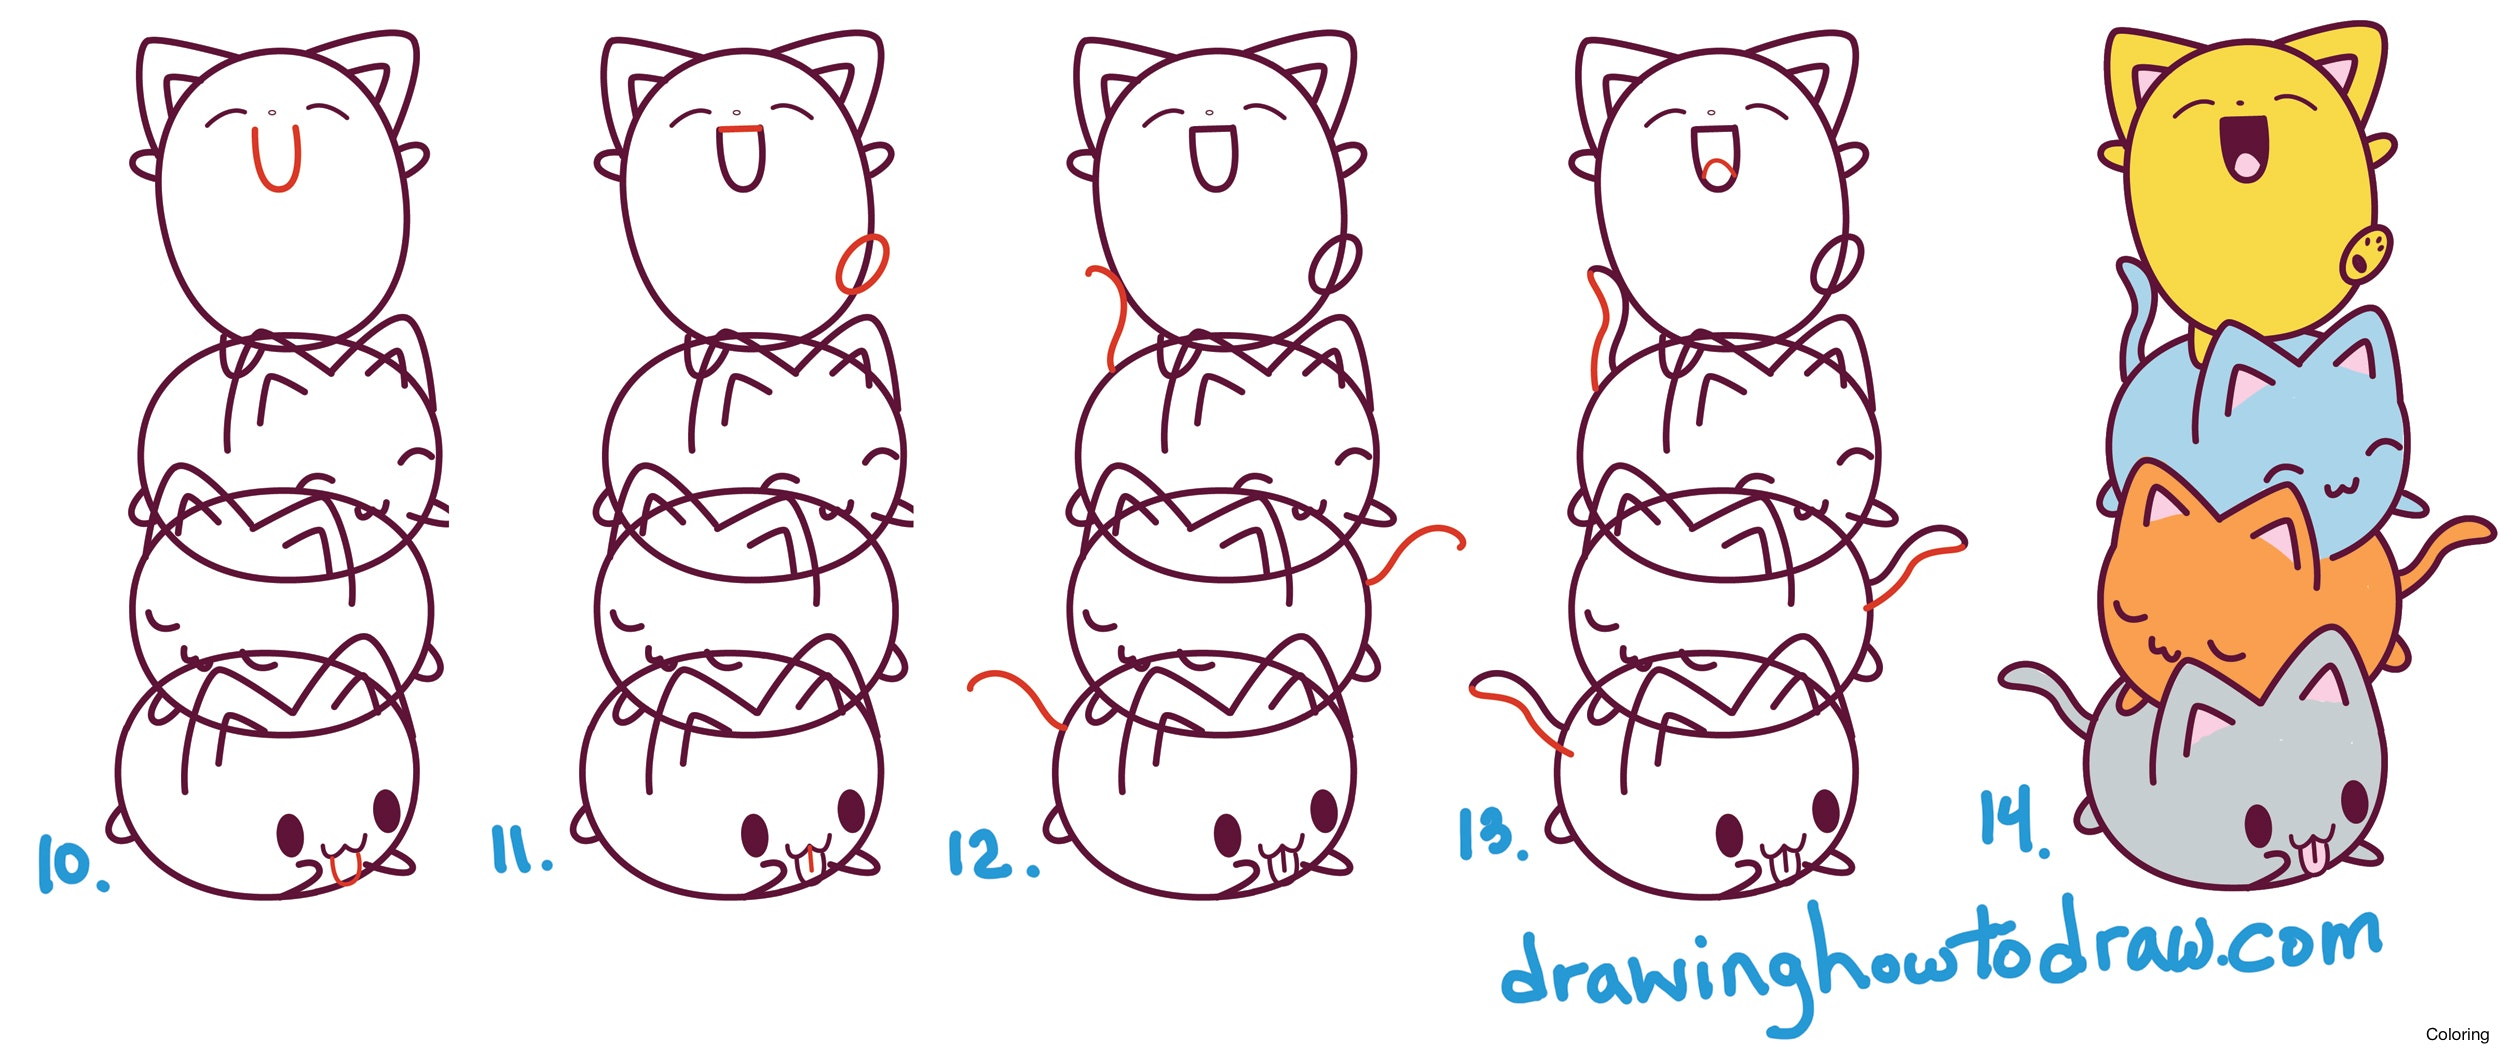 2500x1050 How To Draw Cartoon Witch Cauldron Black Cat From Word Toon